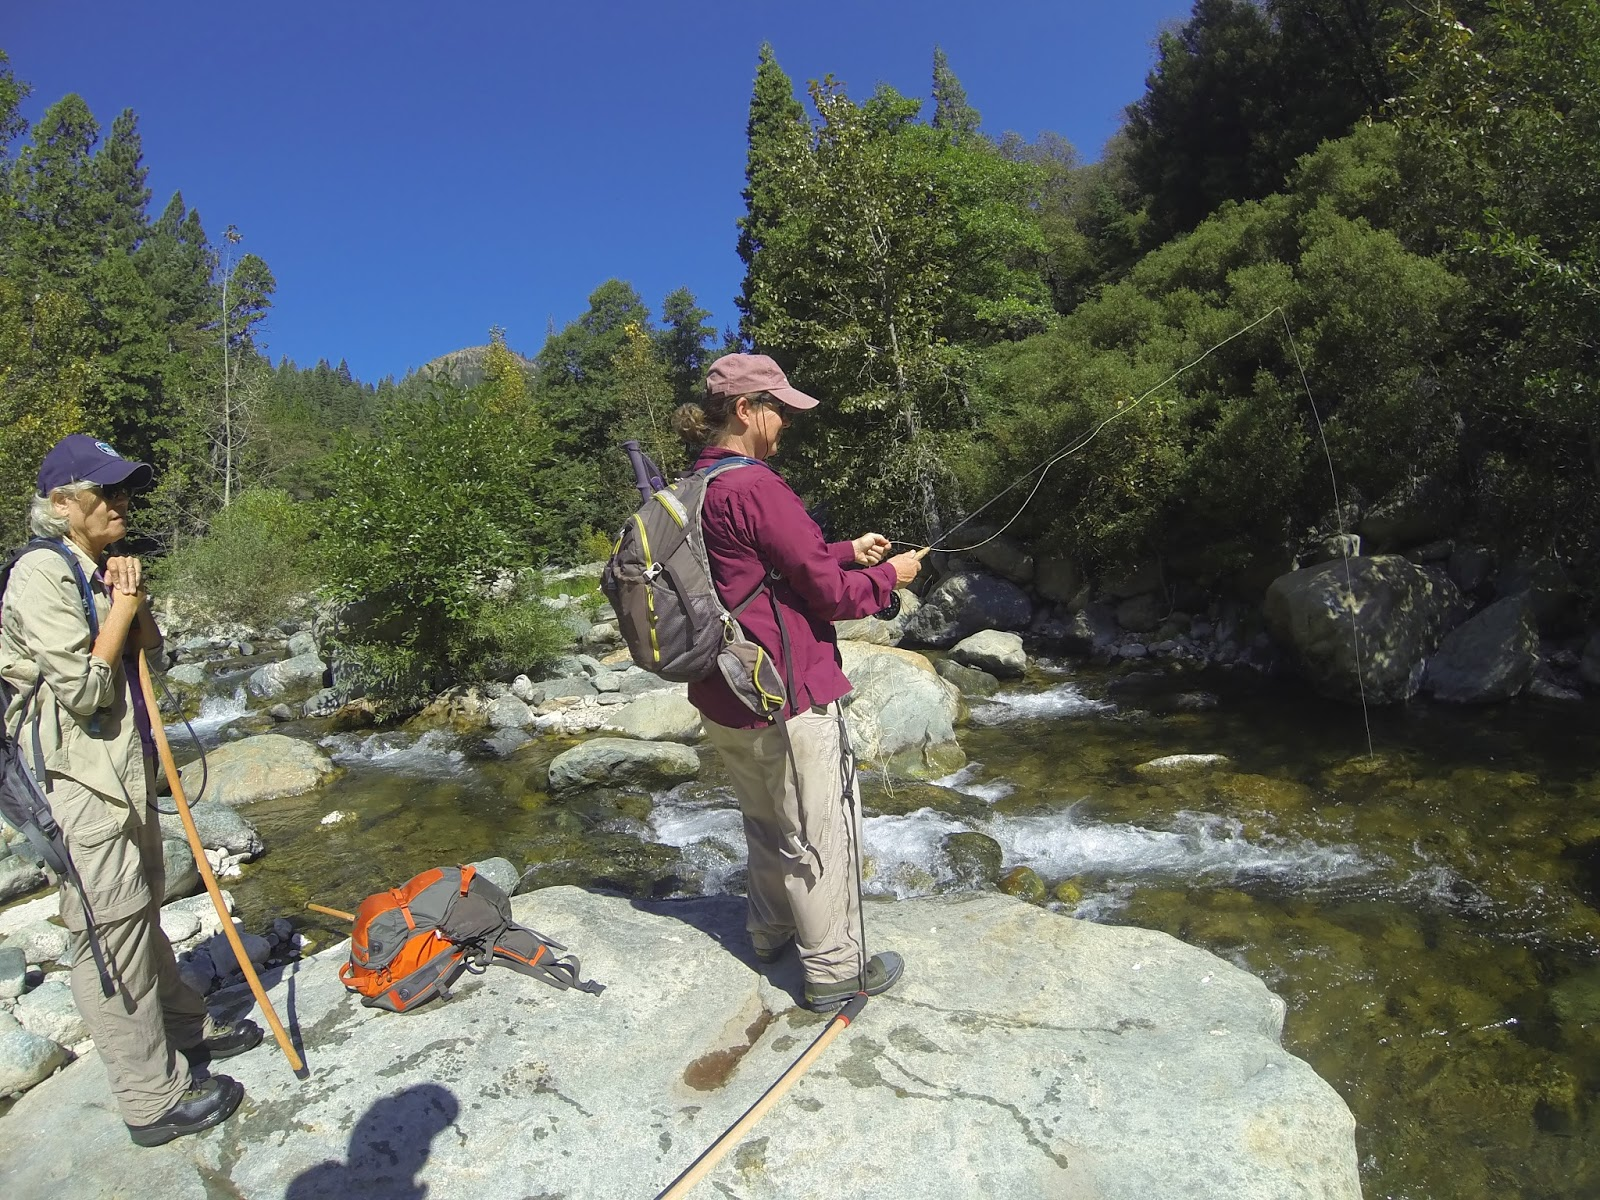 Jon baiocchi fly fishing news north fork yuba river for Jon b fishing